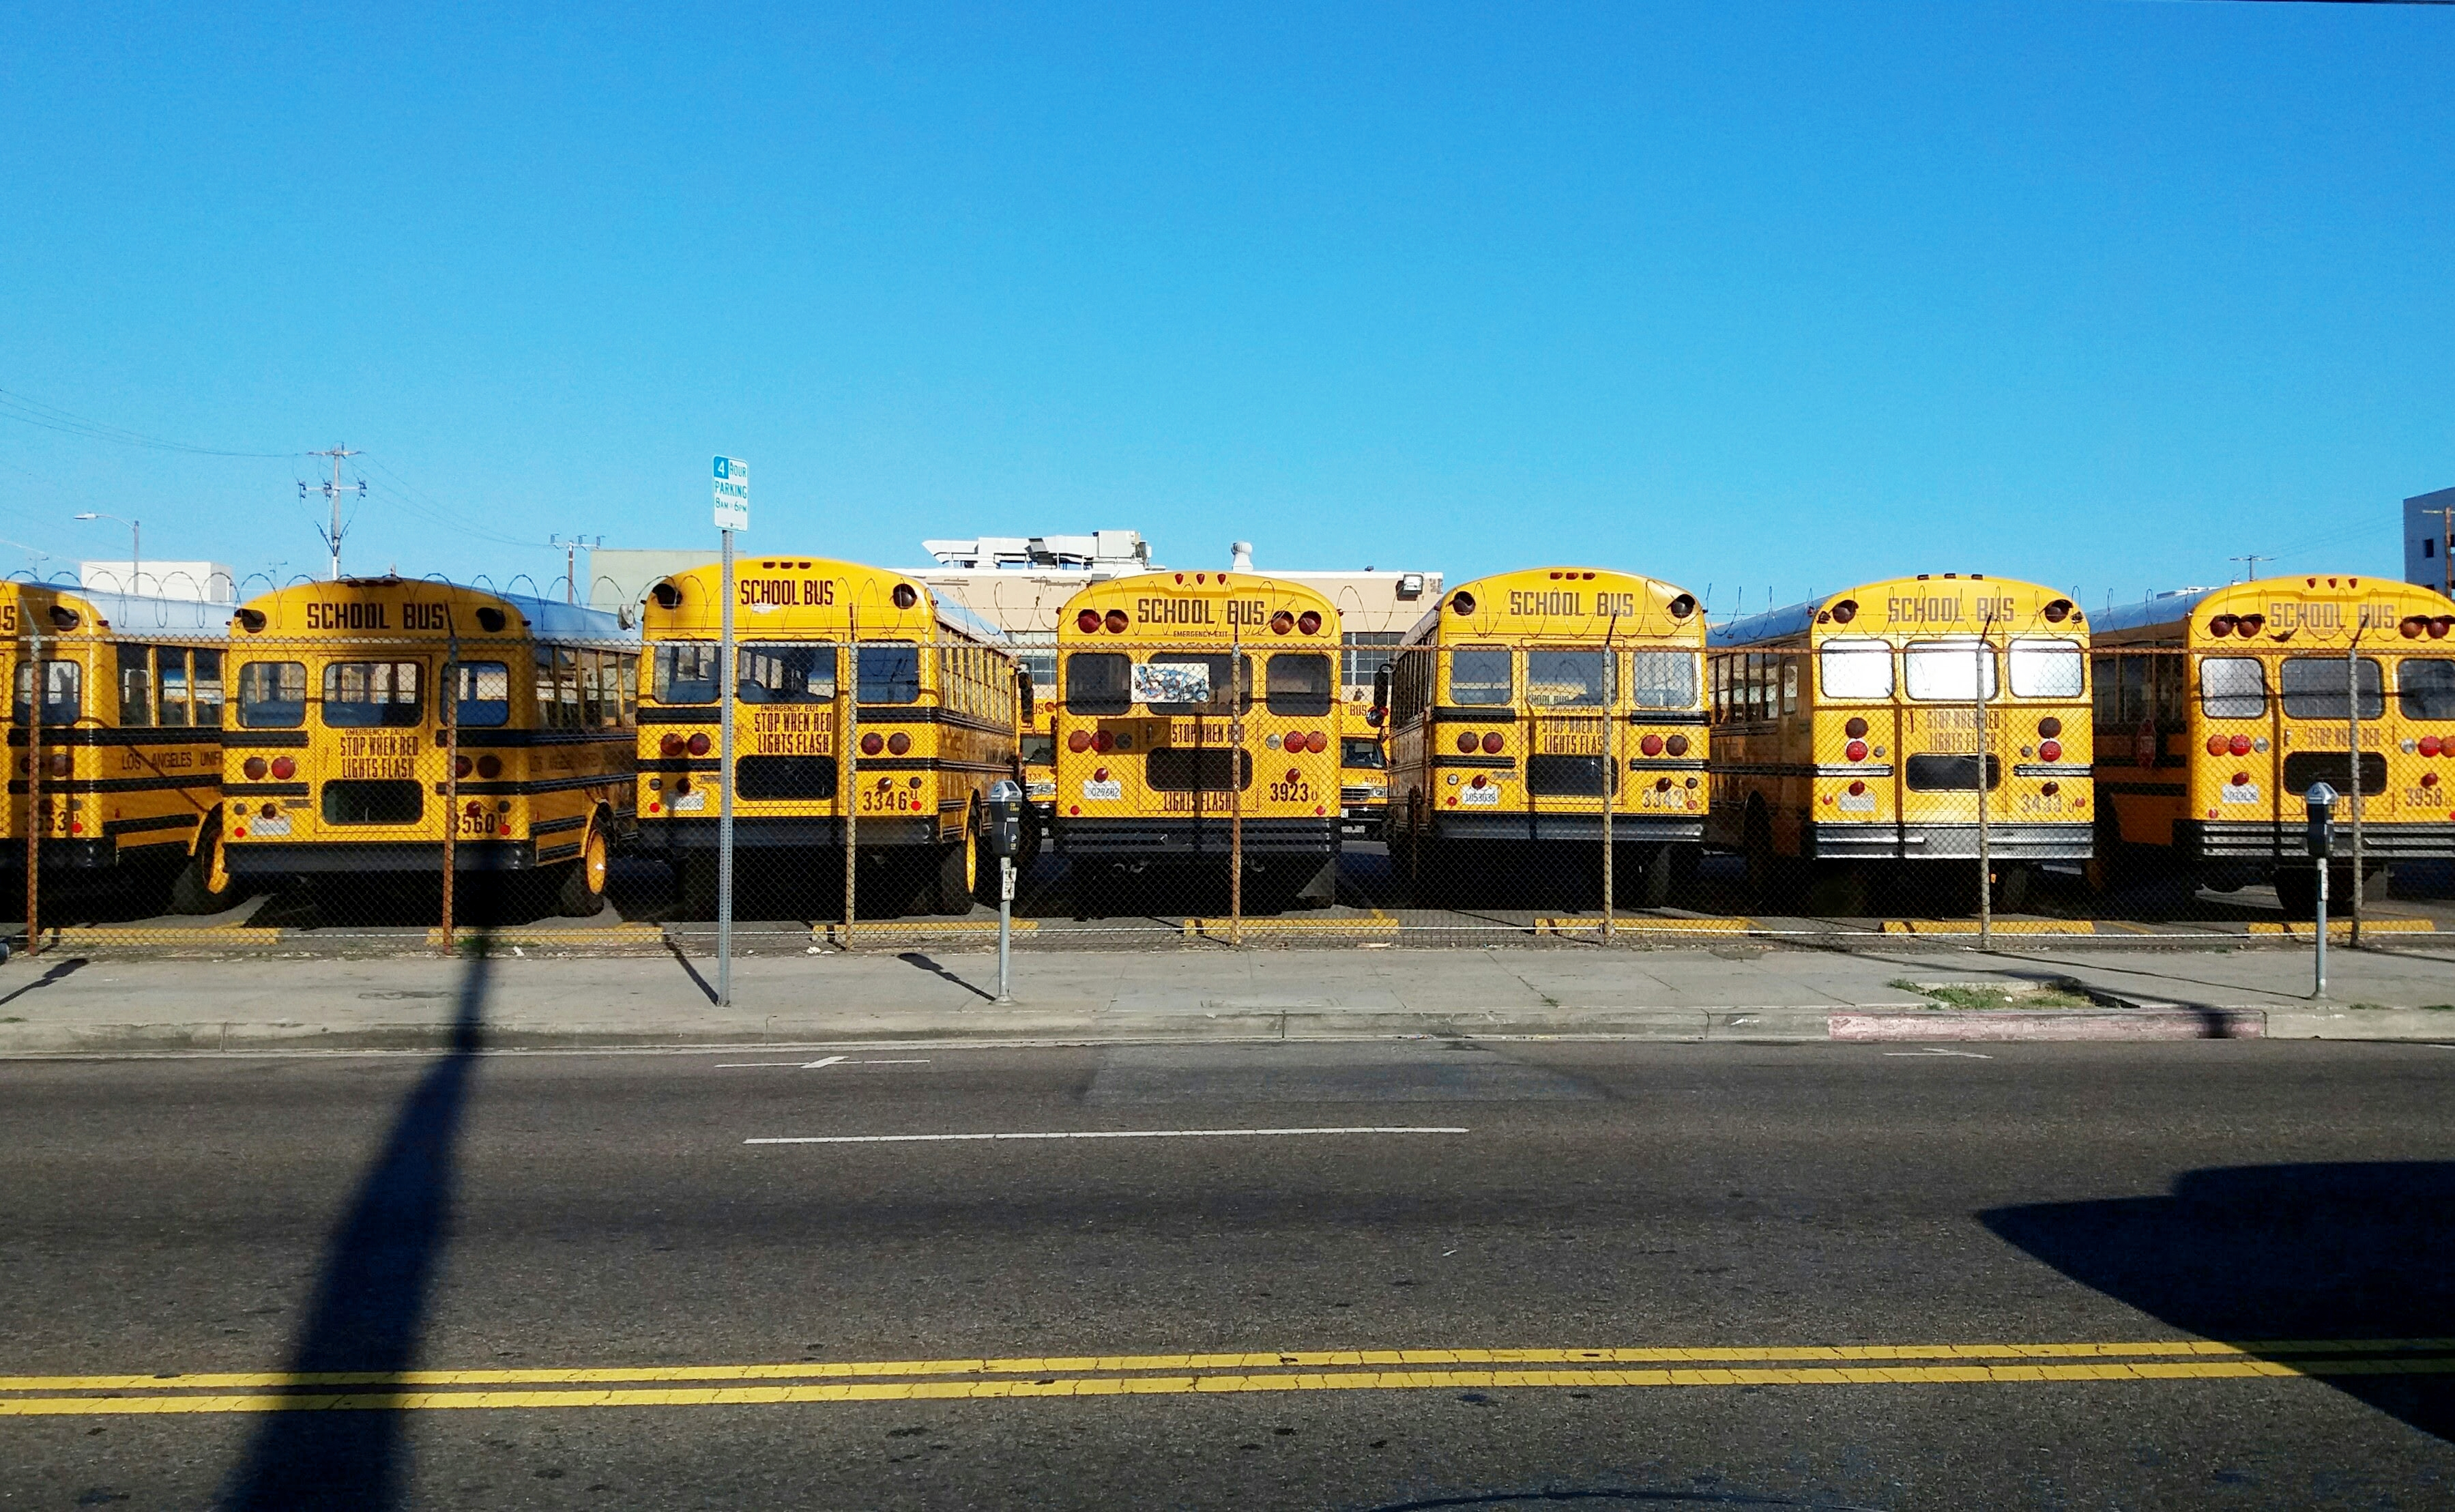 K12 stockphoto fleet of parked buses